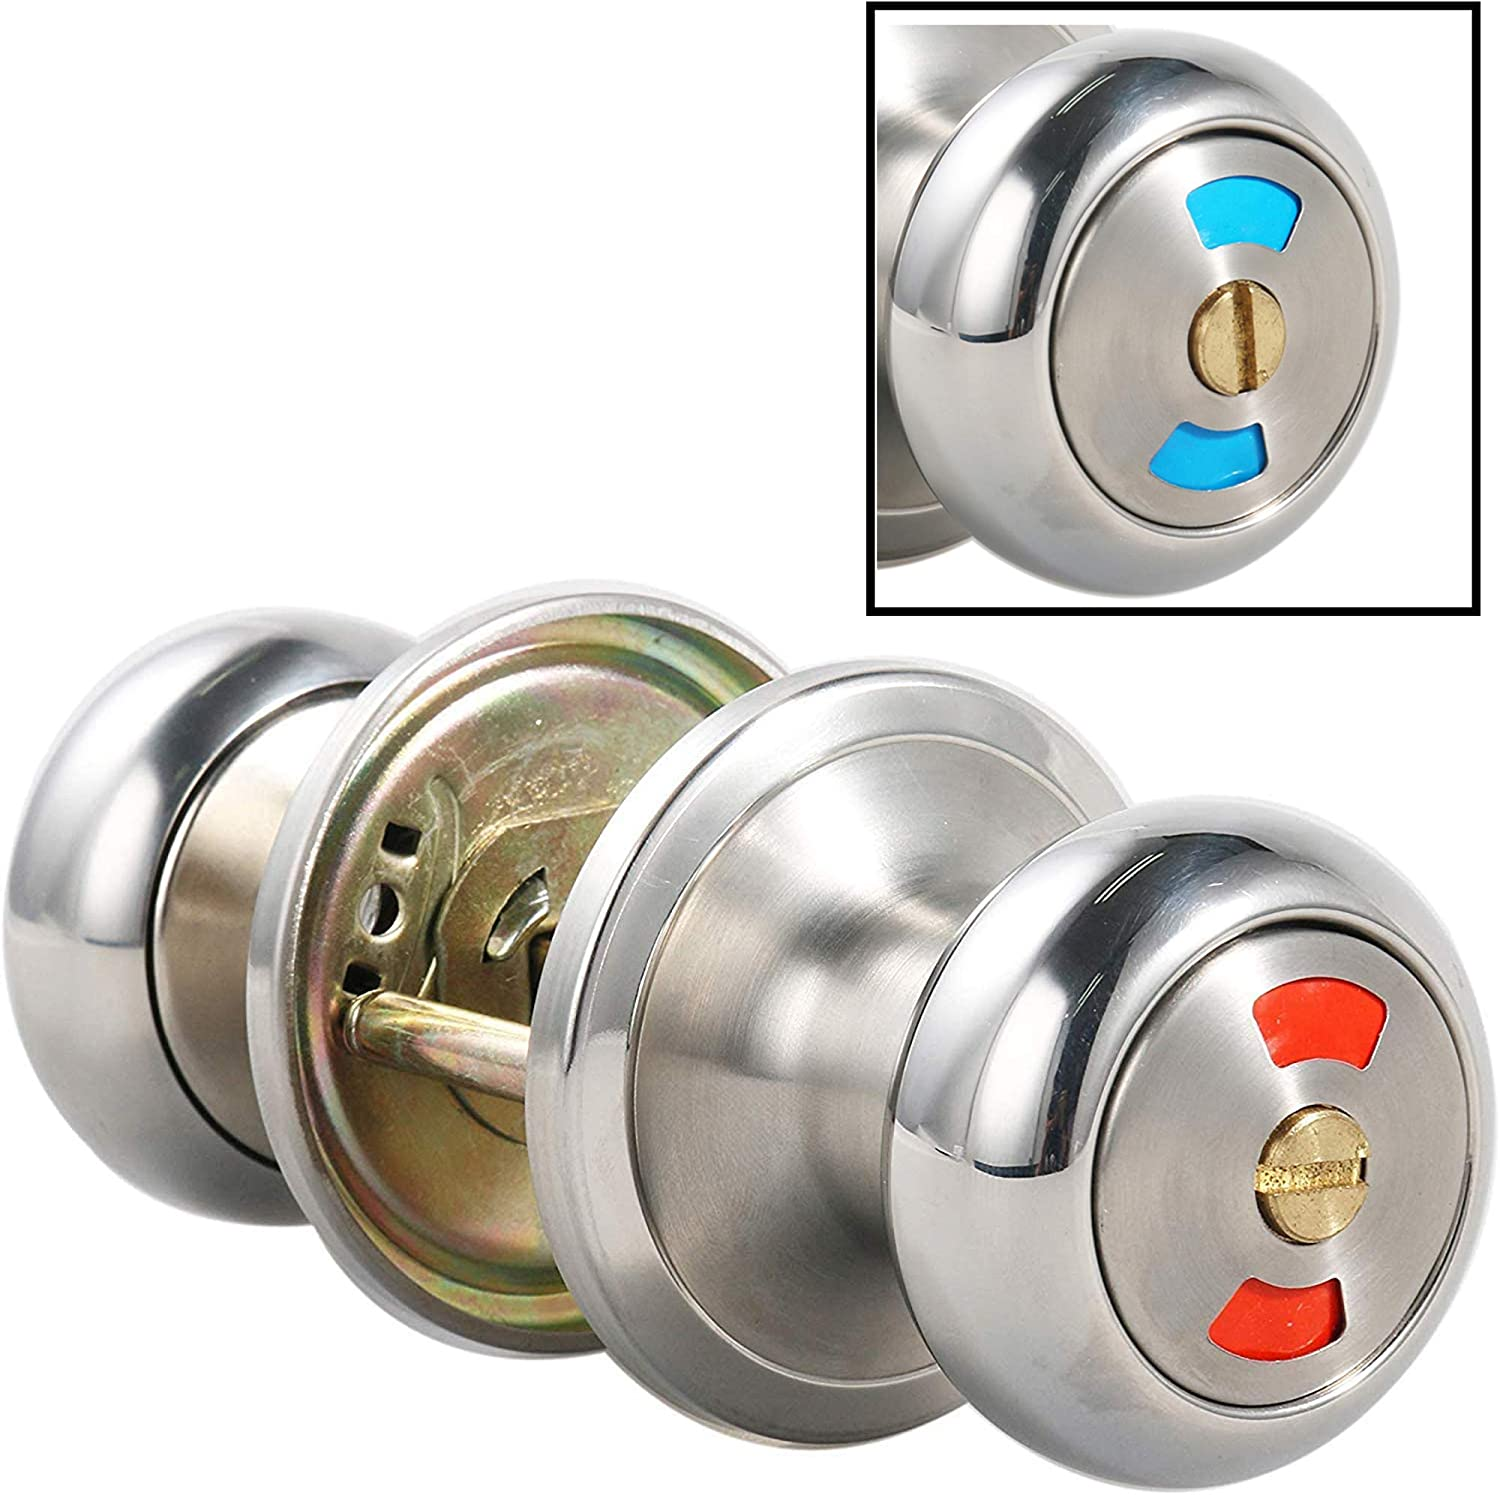 MUTEX Classic Privacy Indicator Door Knob with Dual Color Indication Single Cylinder Thumbturn Lock fits Standard Doors for Bathroom Office Home or Commercial Airbnb (1)